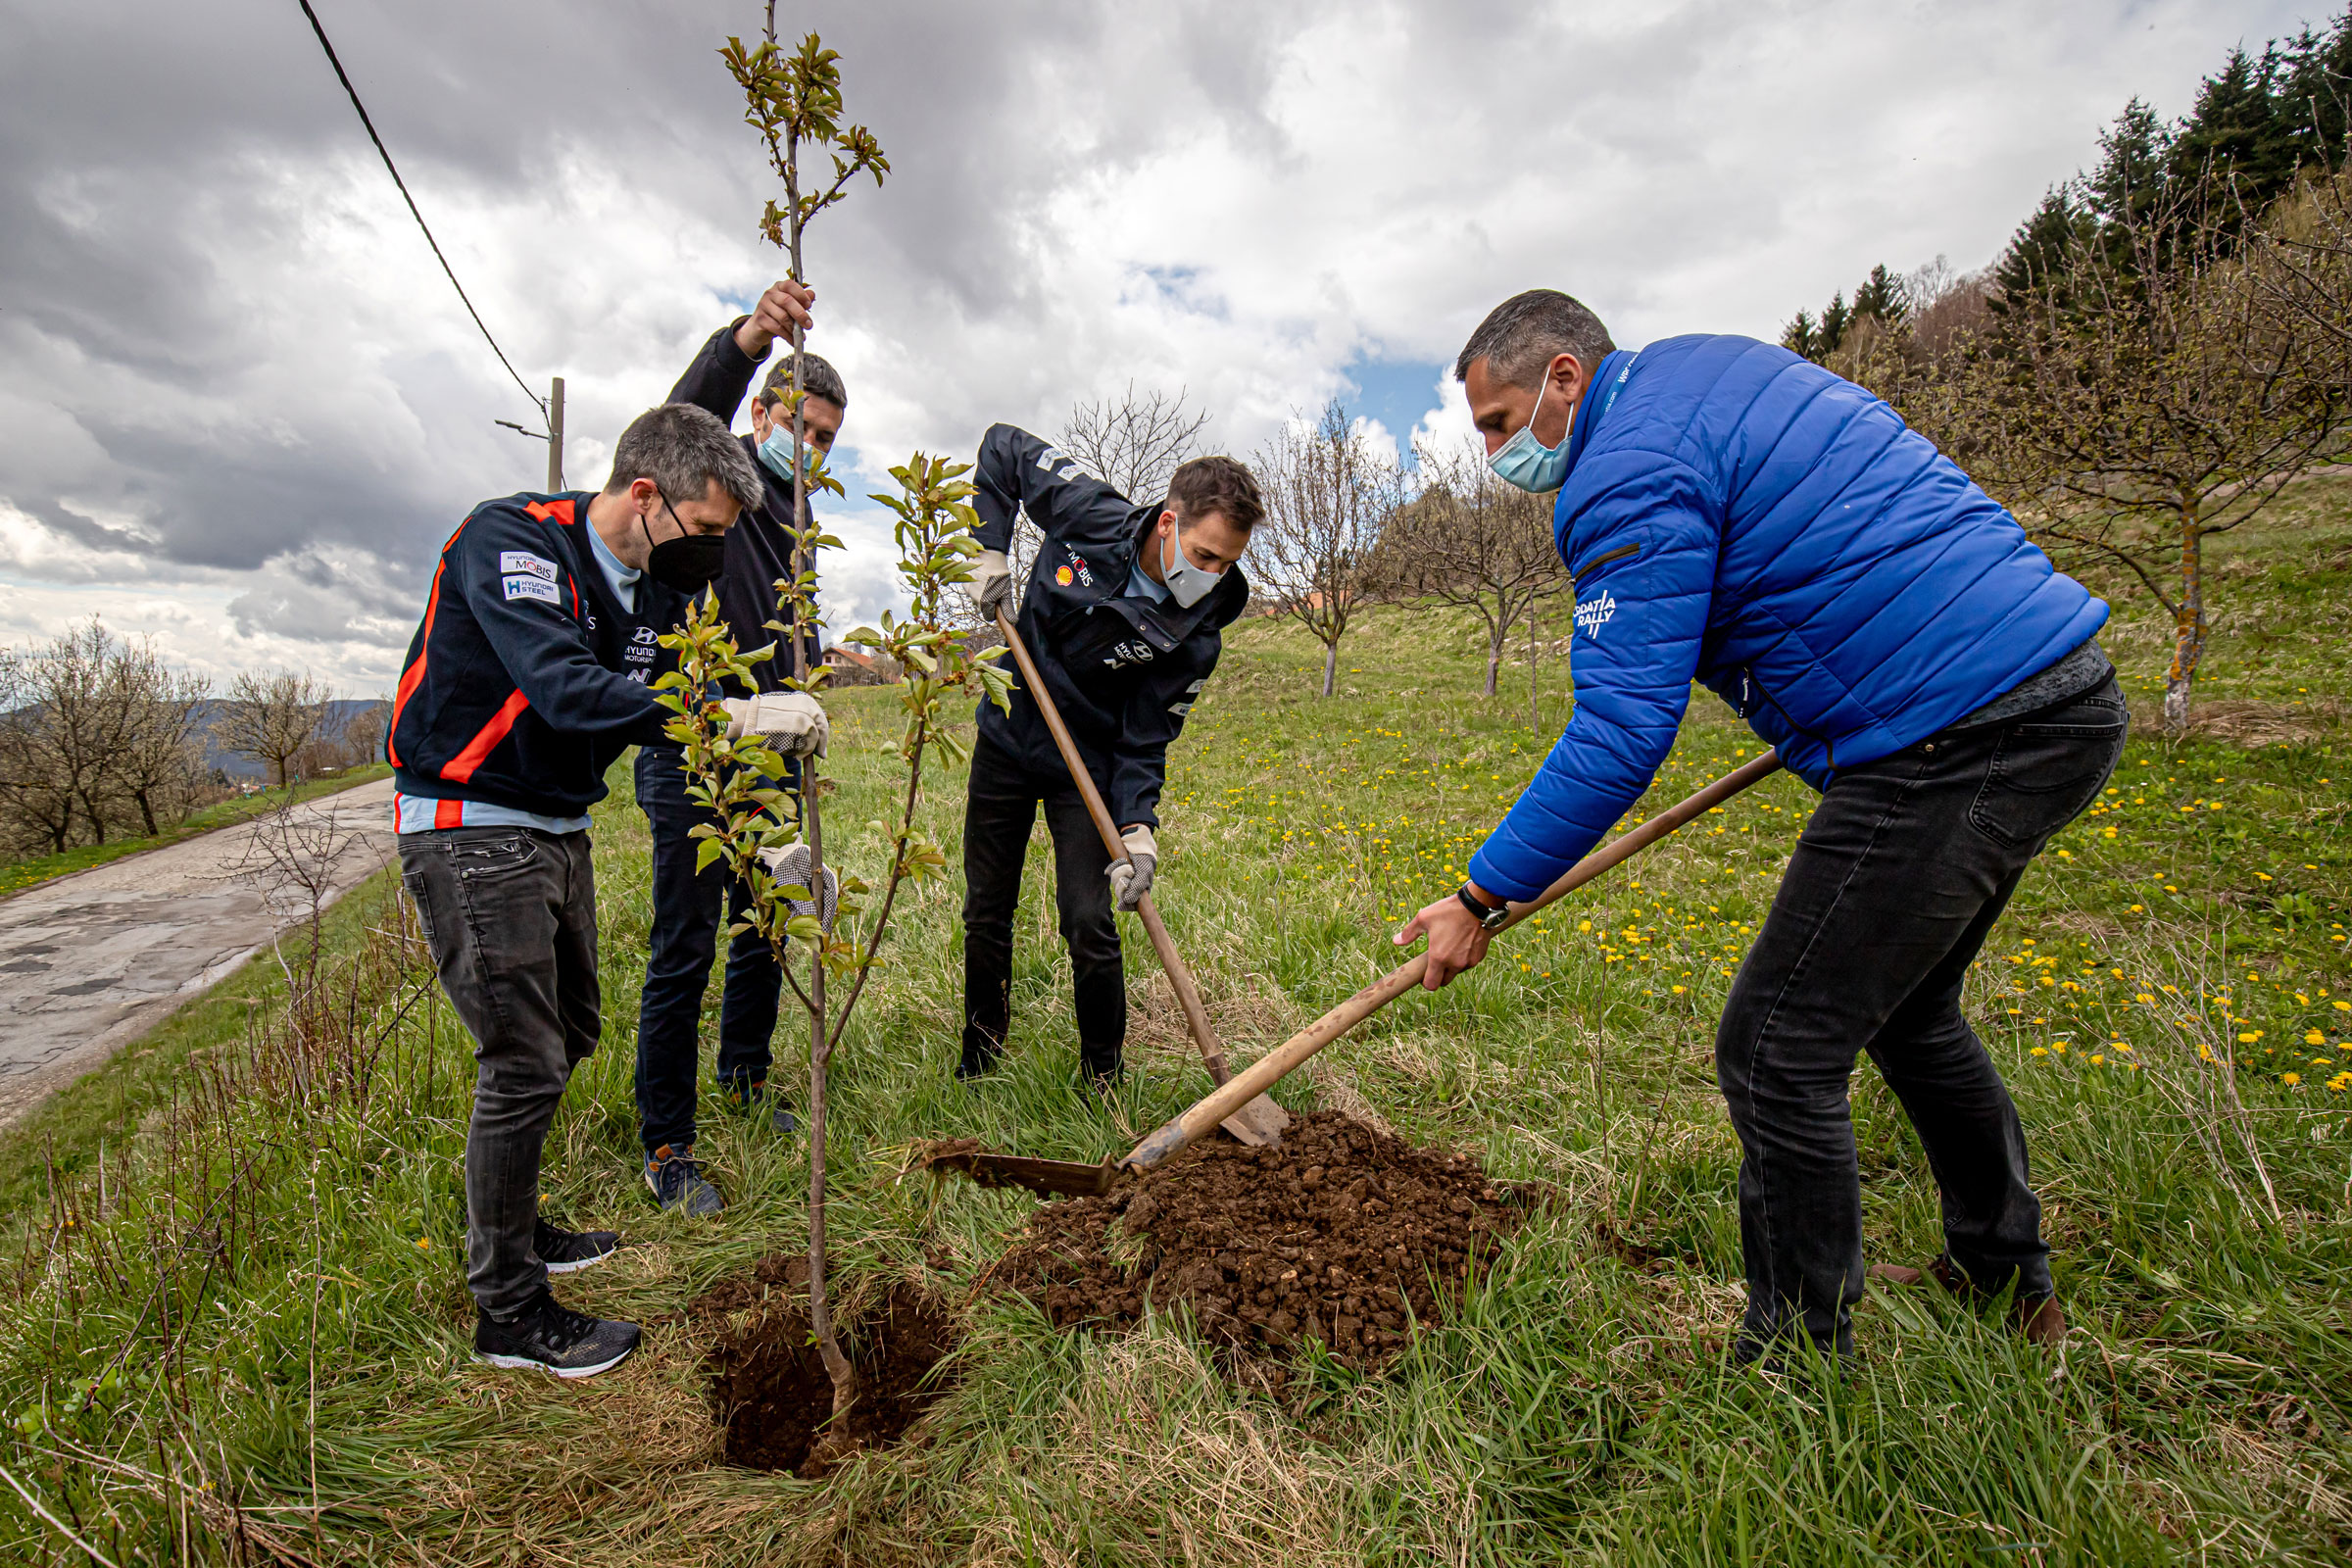 Leading rally drivers planted 11 cherry trees in Žumberak - 2